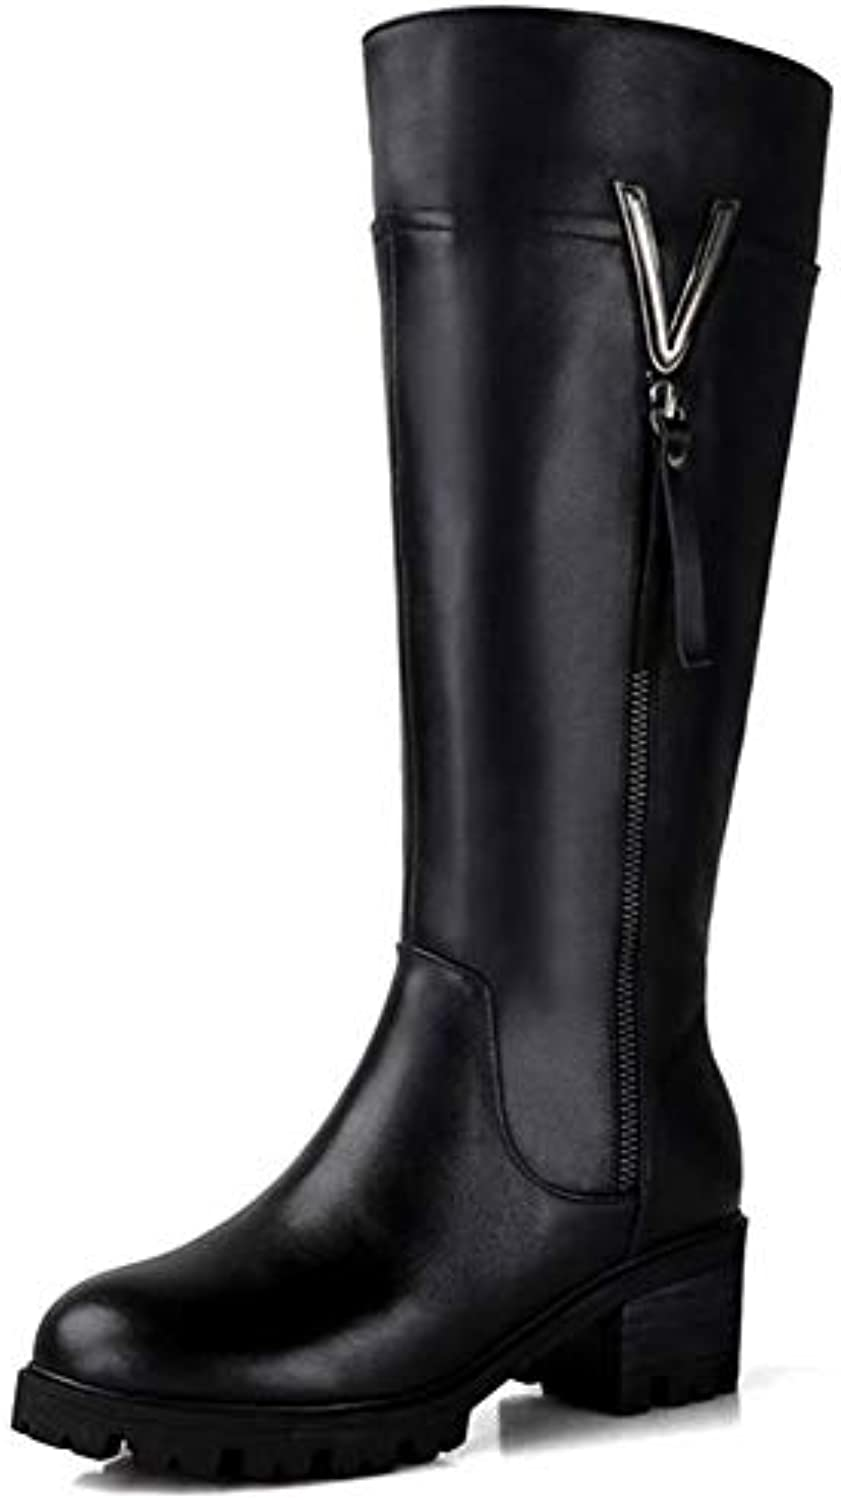 T-JULY Women's Knee High Boots Genuine Leather Natural Wool Boots Zipper Keep Warm Winter Snow Boots